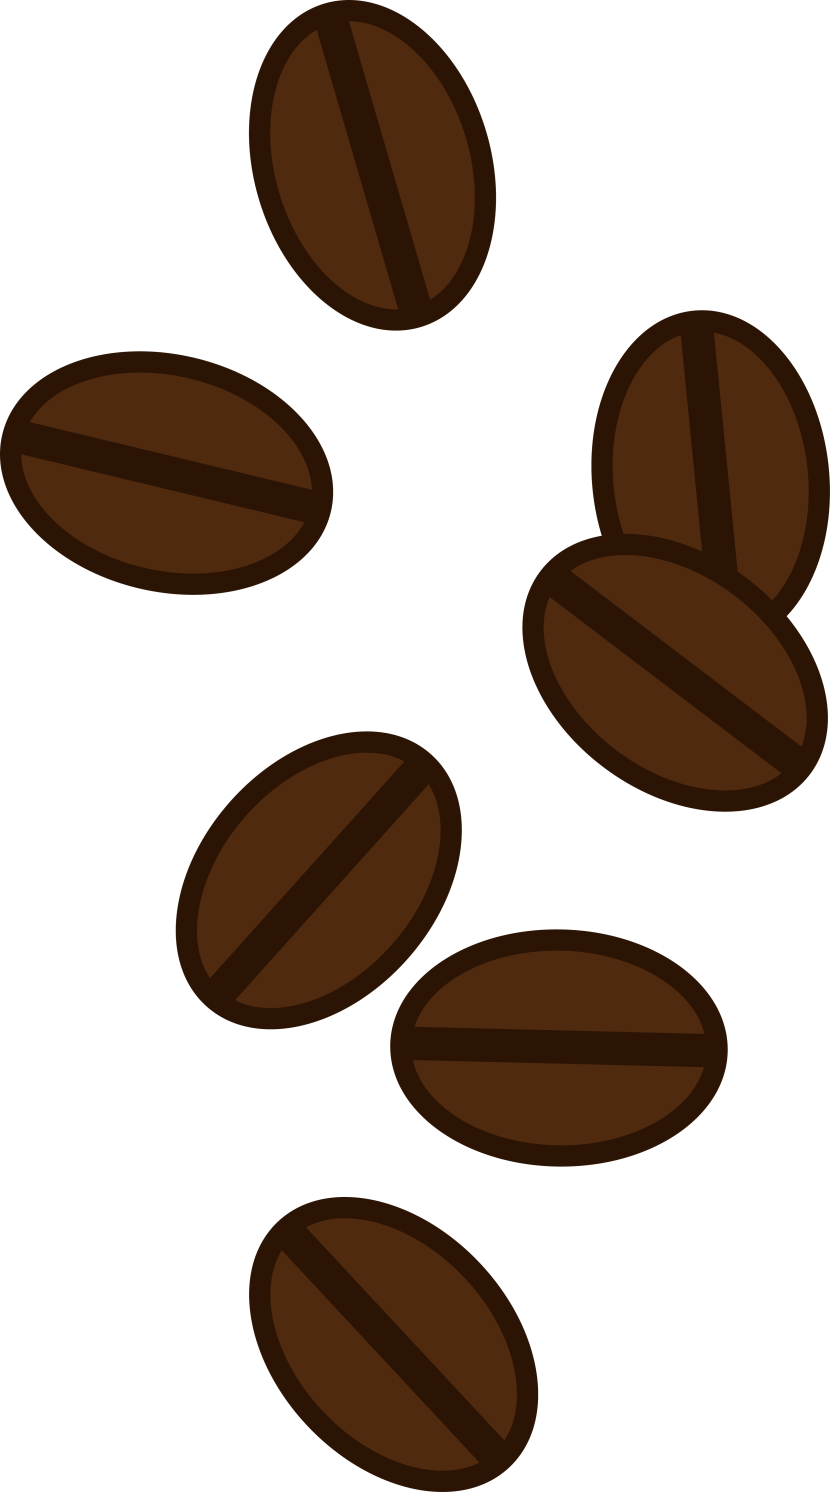 Steam google search shop. Clipart coffee gourmet coffee